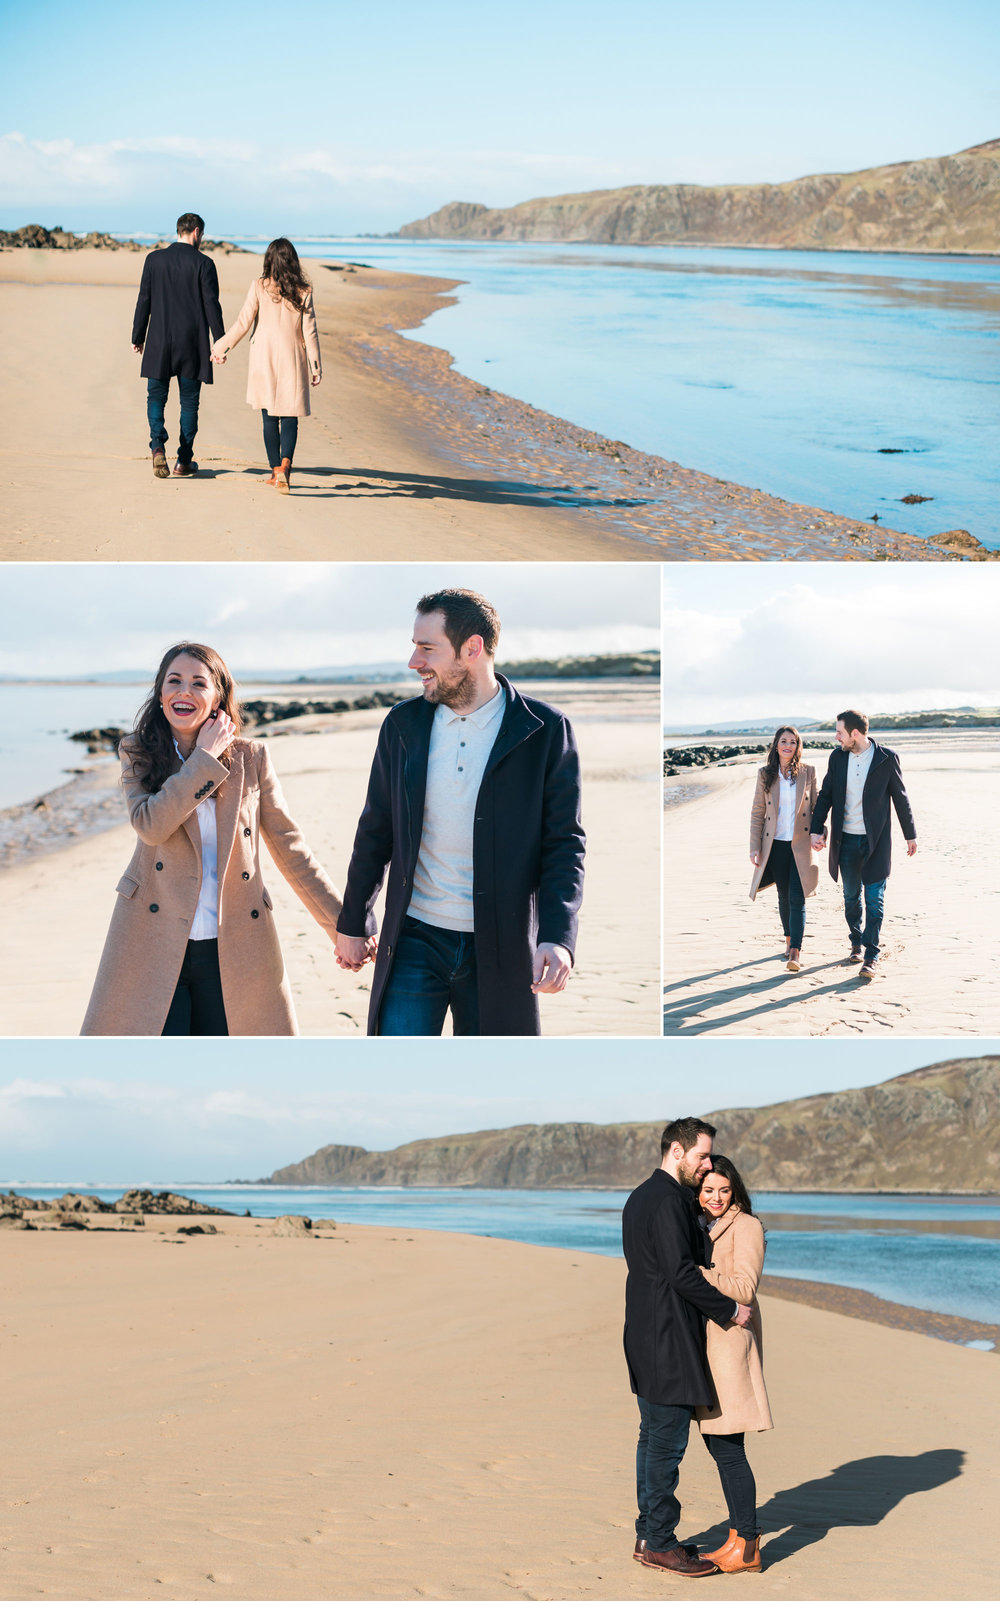 Leanne-and-Dave-Ballyliffin-Engagement-0006-Michael-Gill-Photography.jpg